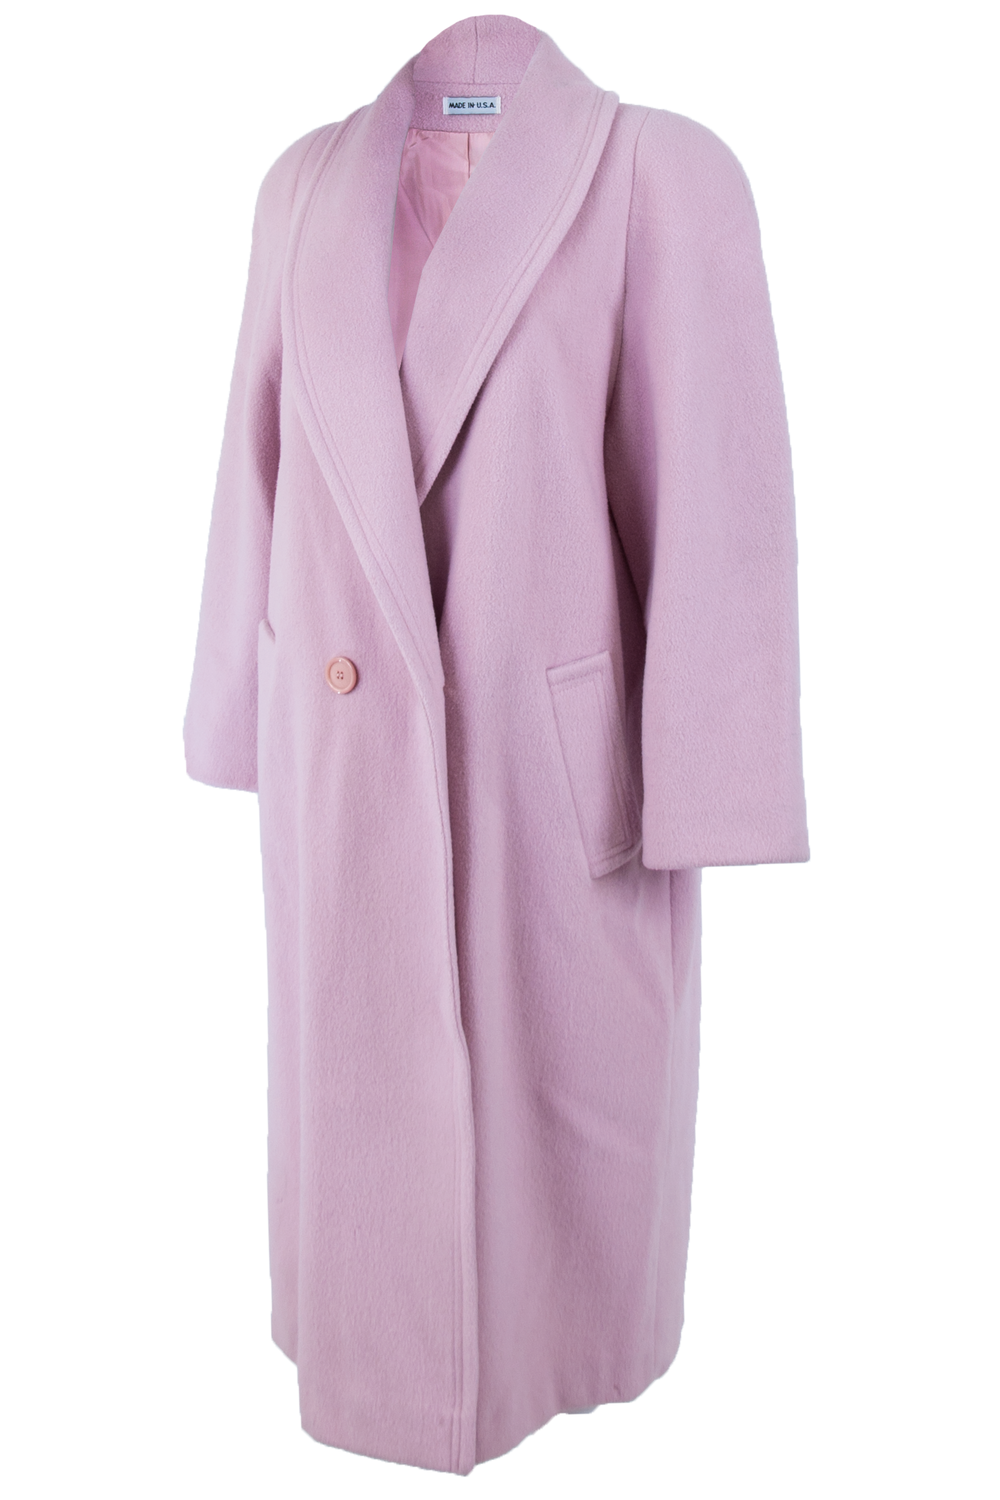 Pink wool coat with rounded lapel collar